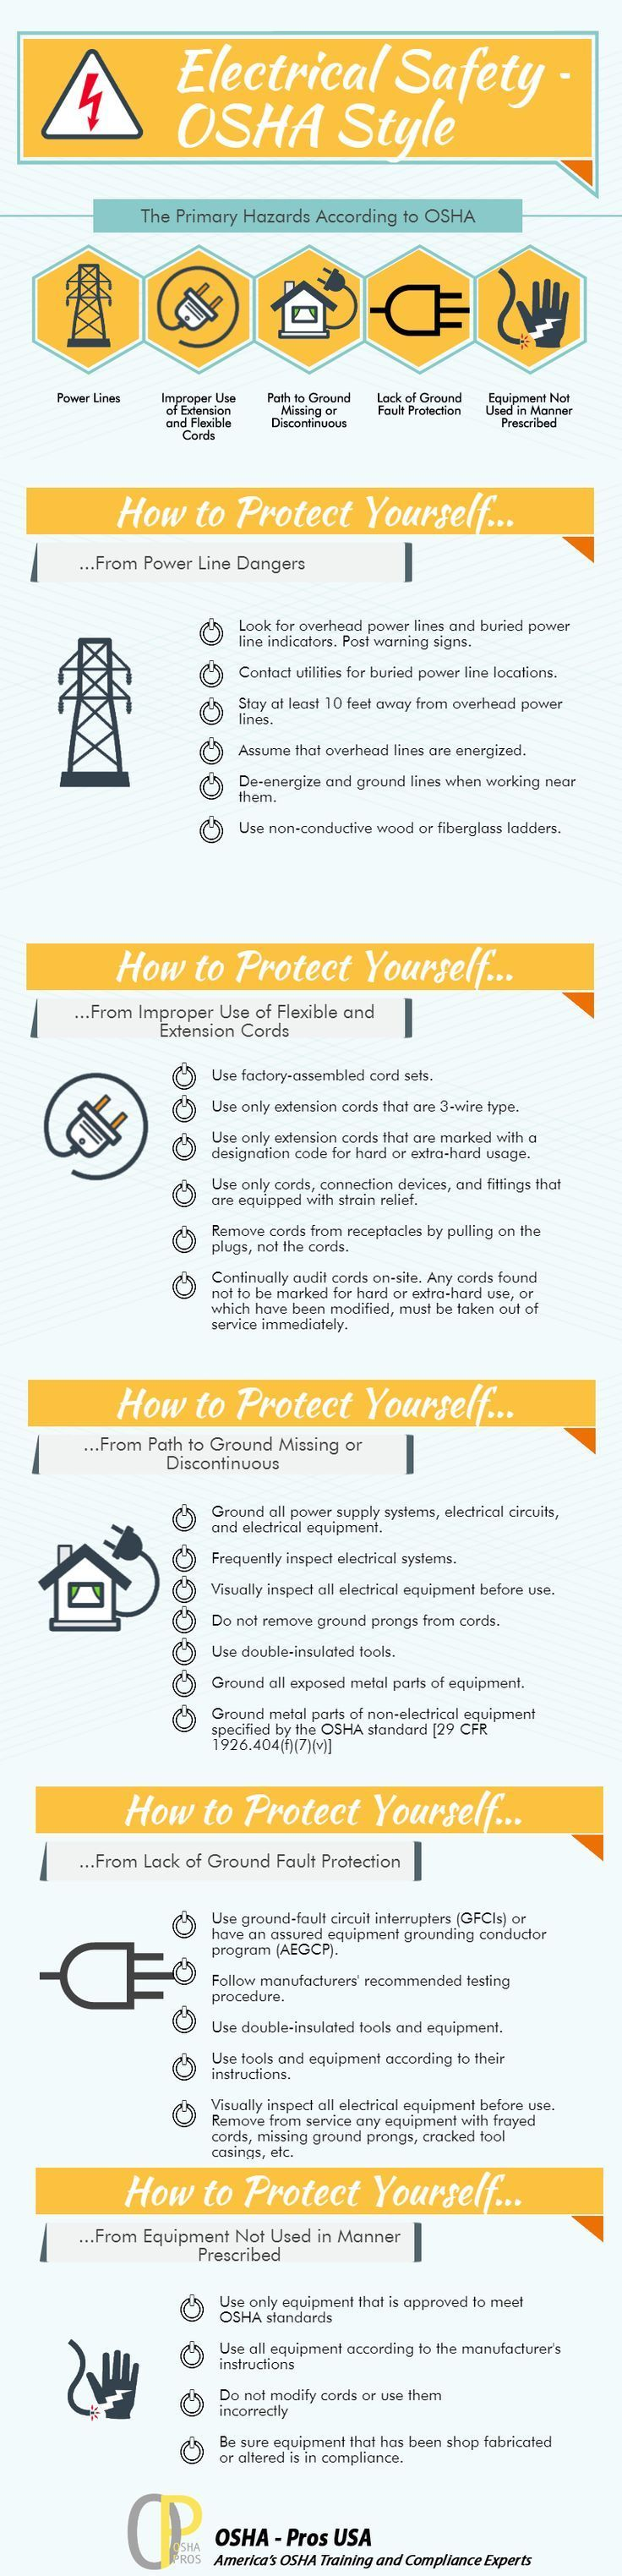 OSHA Electrical Hazards Causes and Safety Tips infographic ...